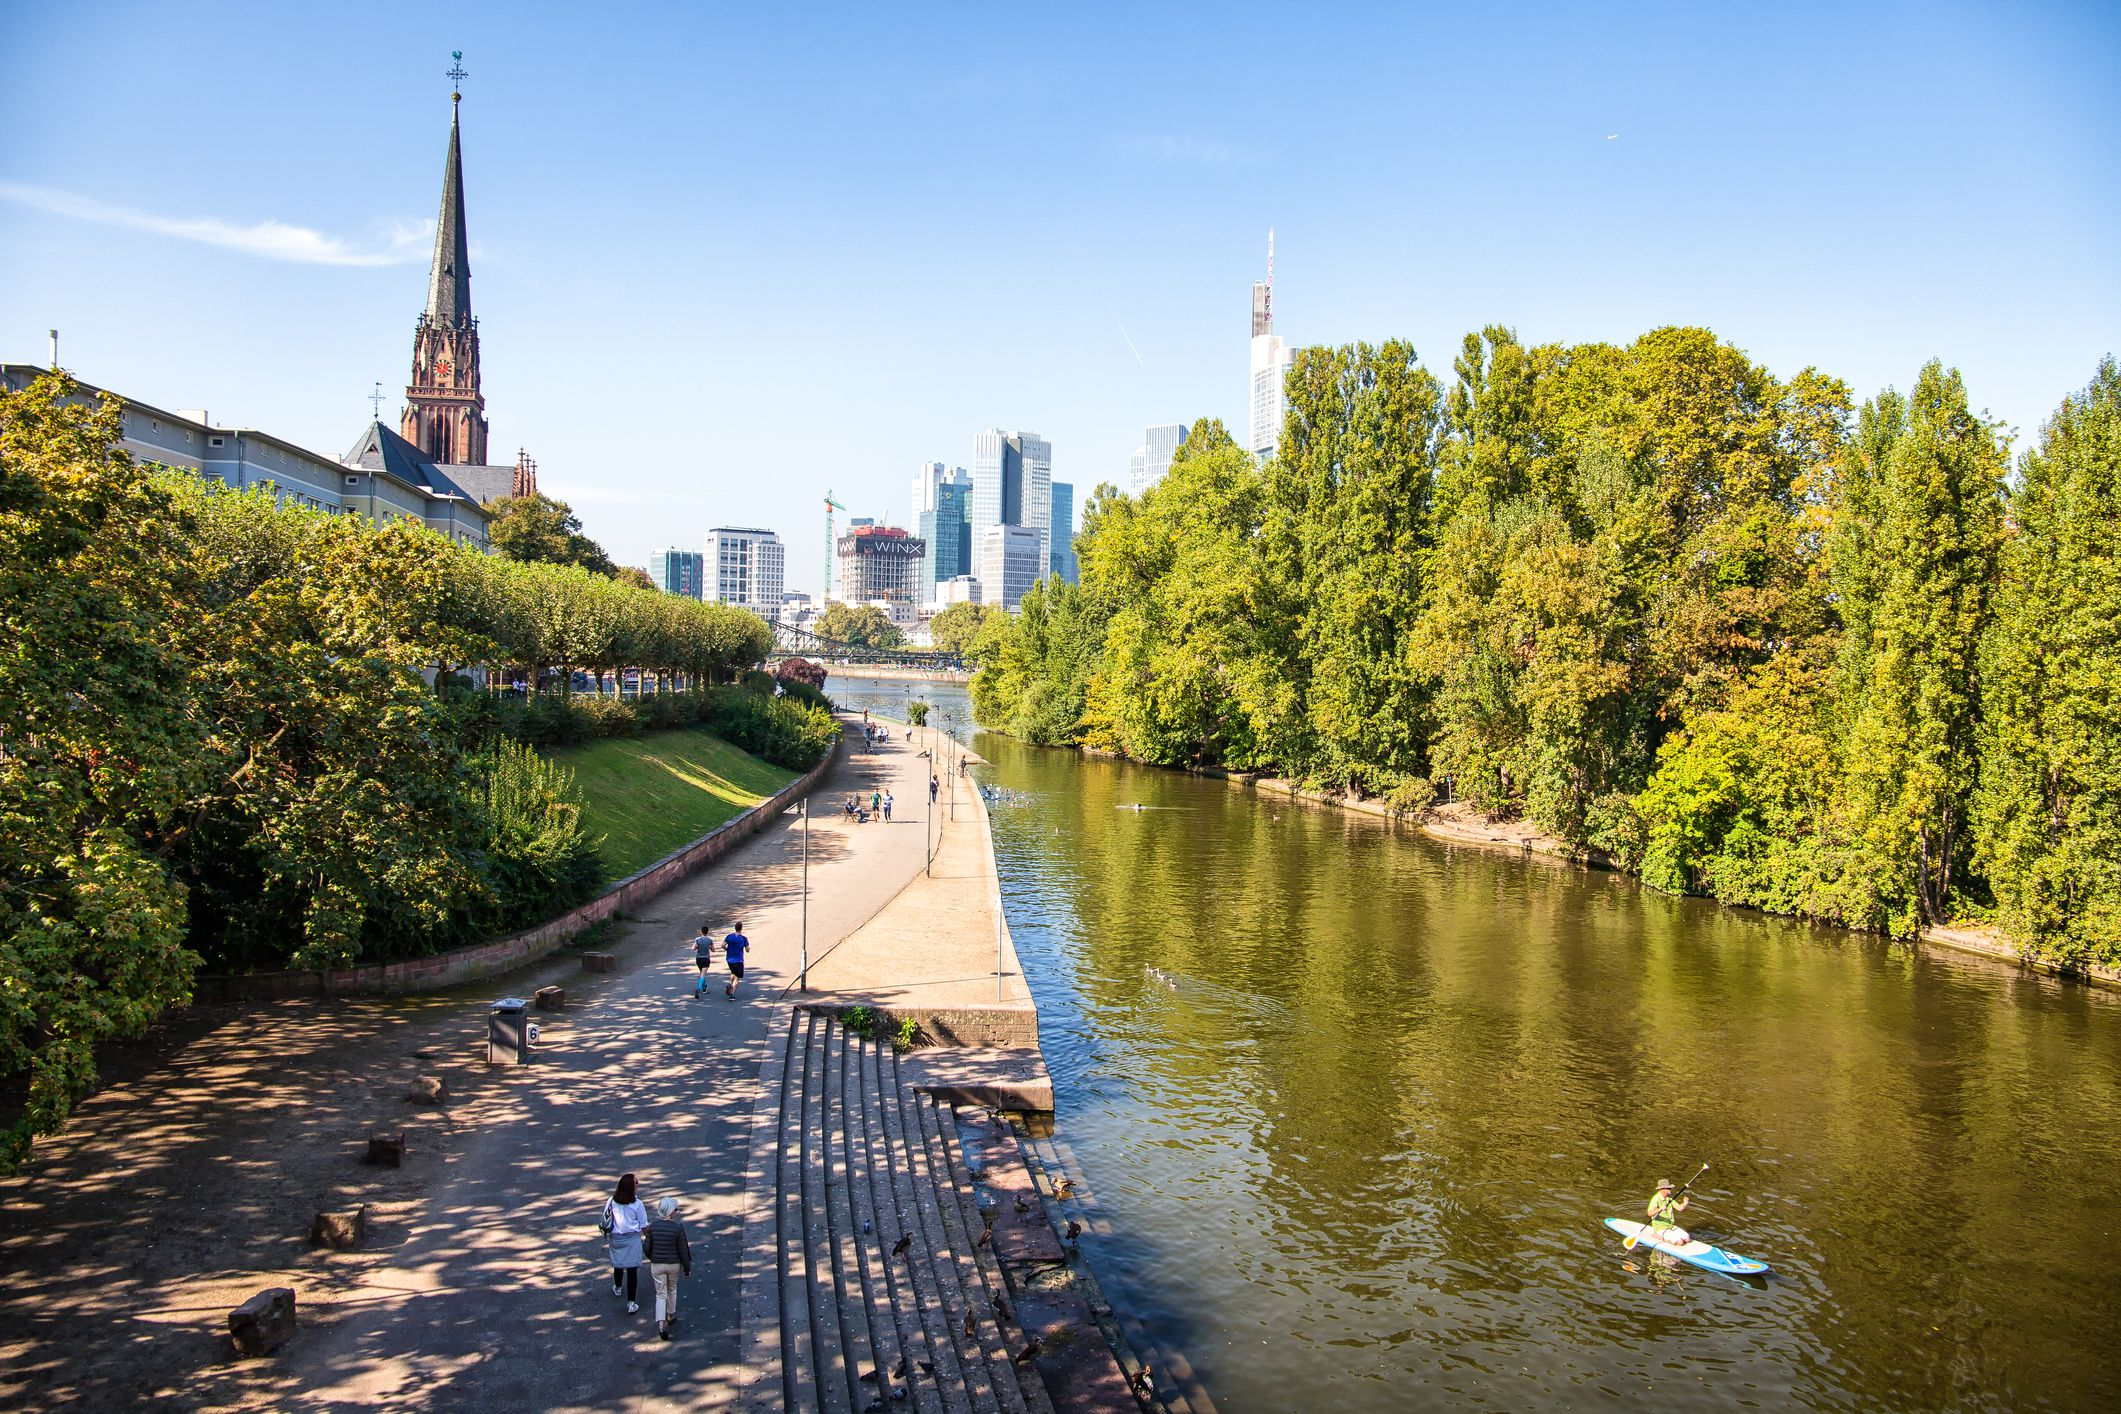 Monthly Car Insurance >> The Weather and Climate in Frankfurt, Germany